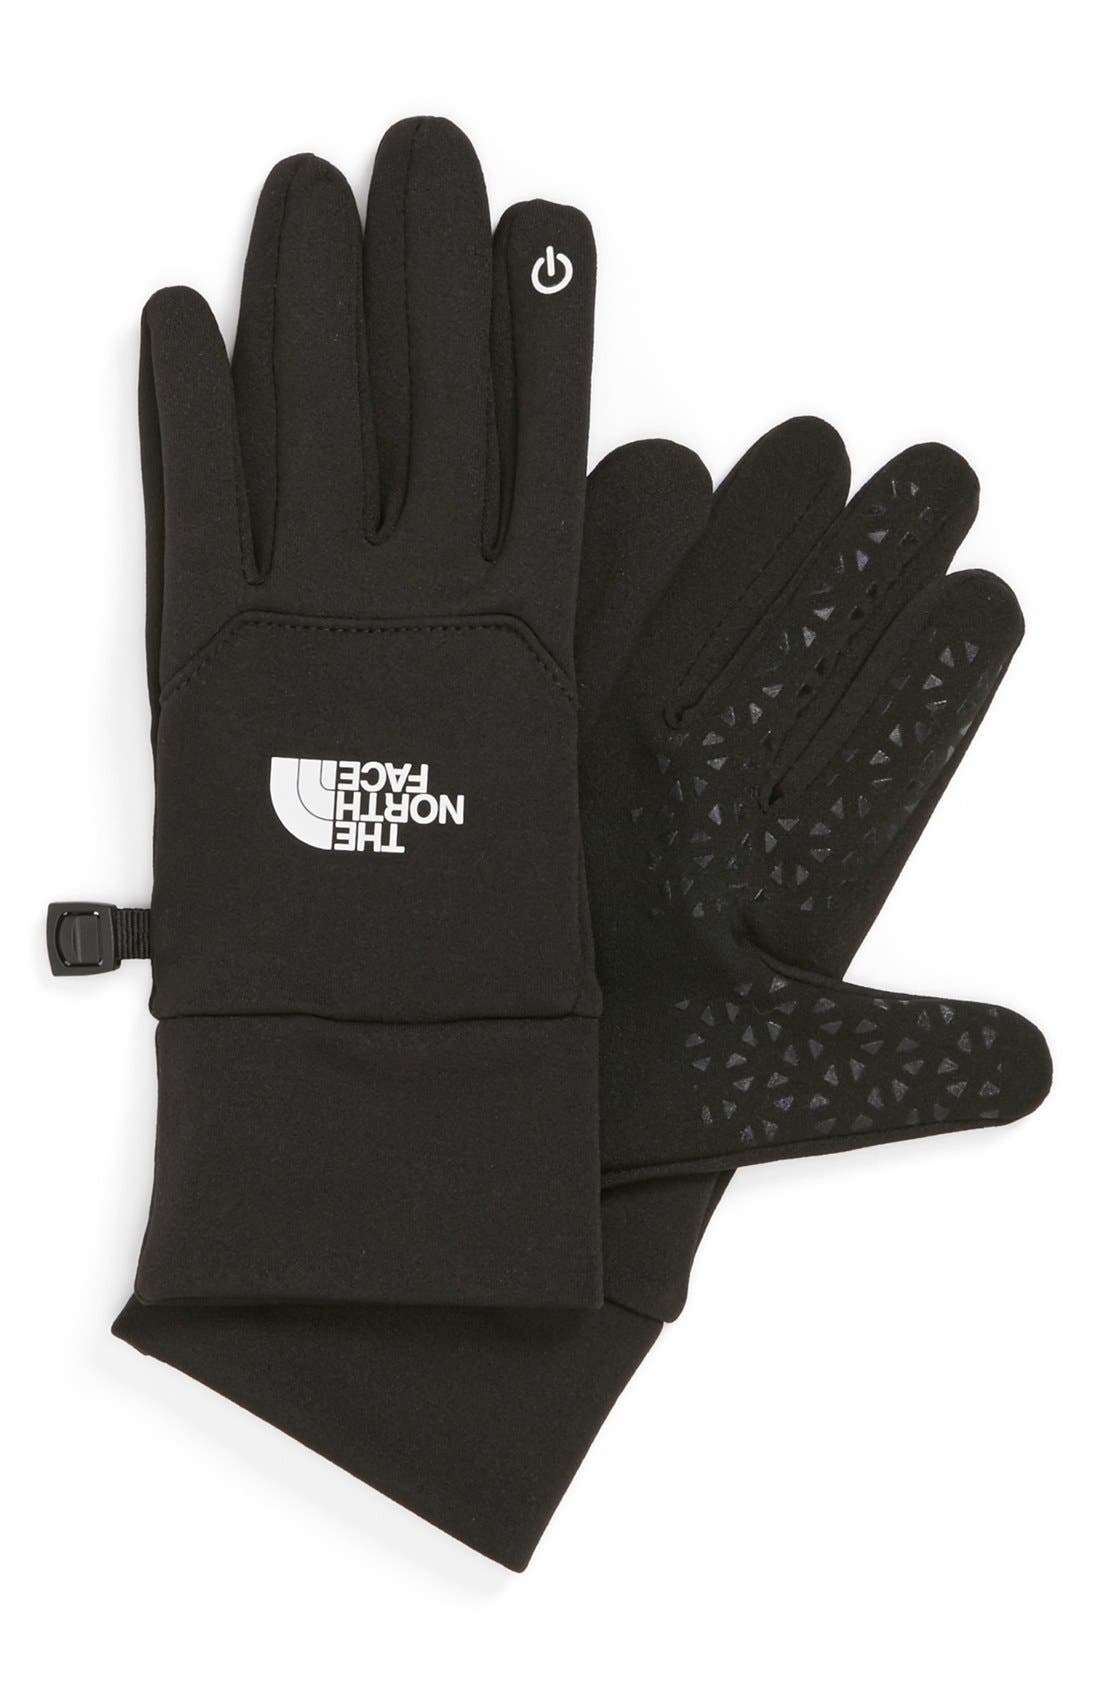 Alternate Image 1 Selected - The North Face 'E-Tip' Glove (Regular Retail Price: $45.00)